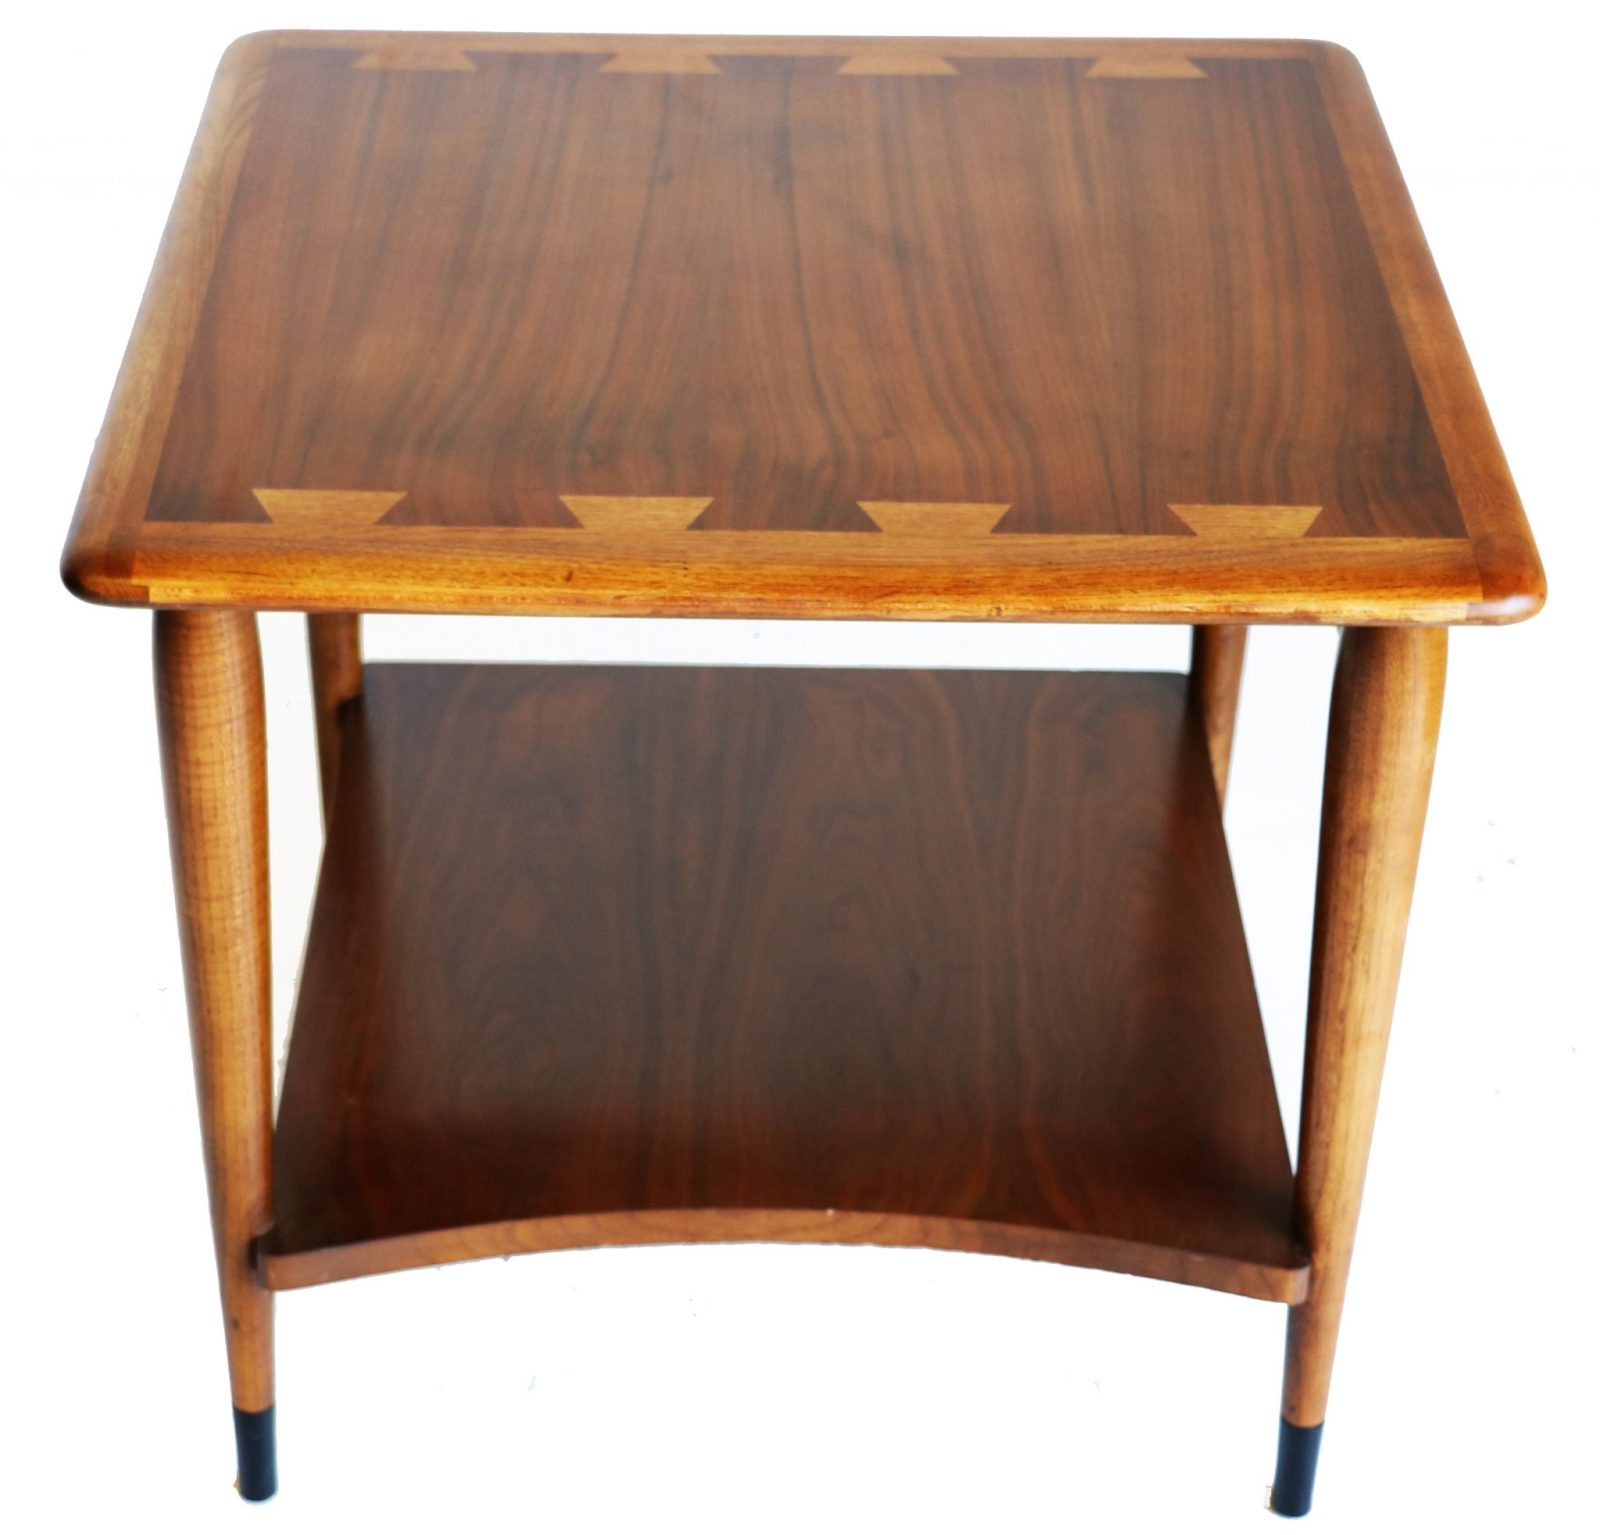 Lane Coffee Table With Drawers: Mid Century Modern Table By Lane